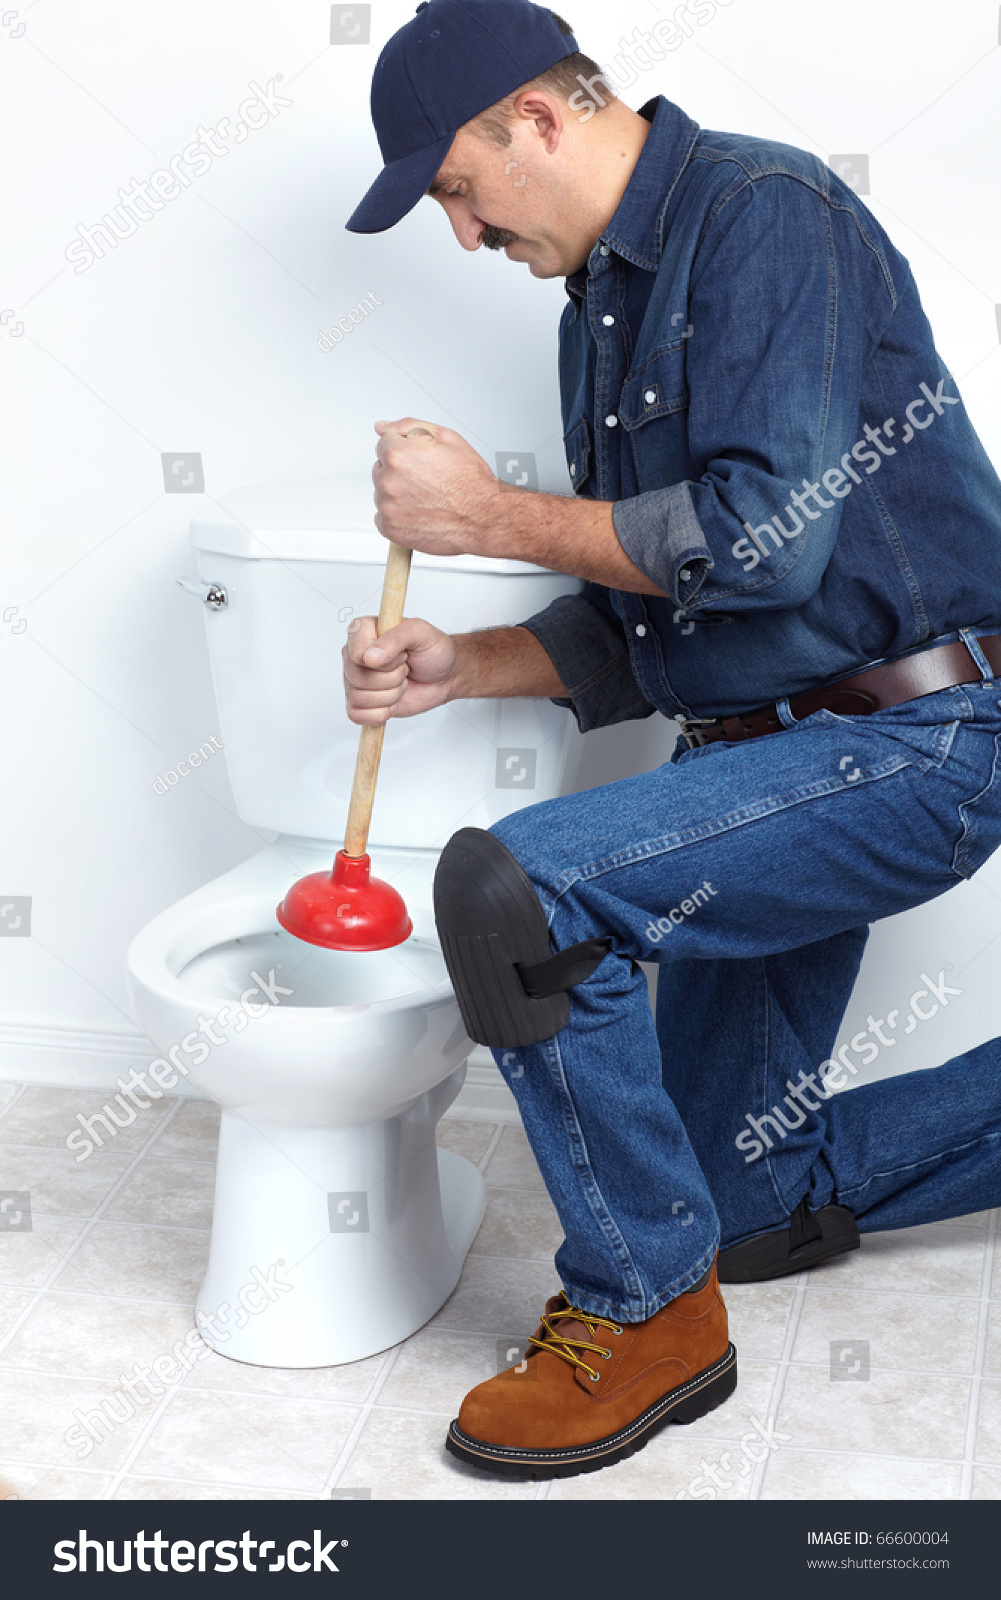 plumber with a toilet plunger stock photo 66600004 shutterstock. Black Bedroom Furniture Sets. Home Design Ideas